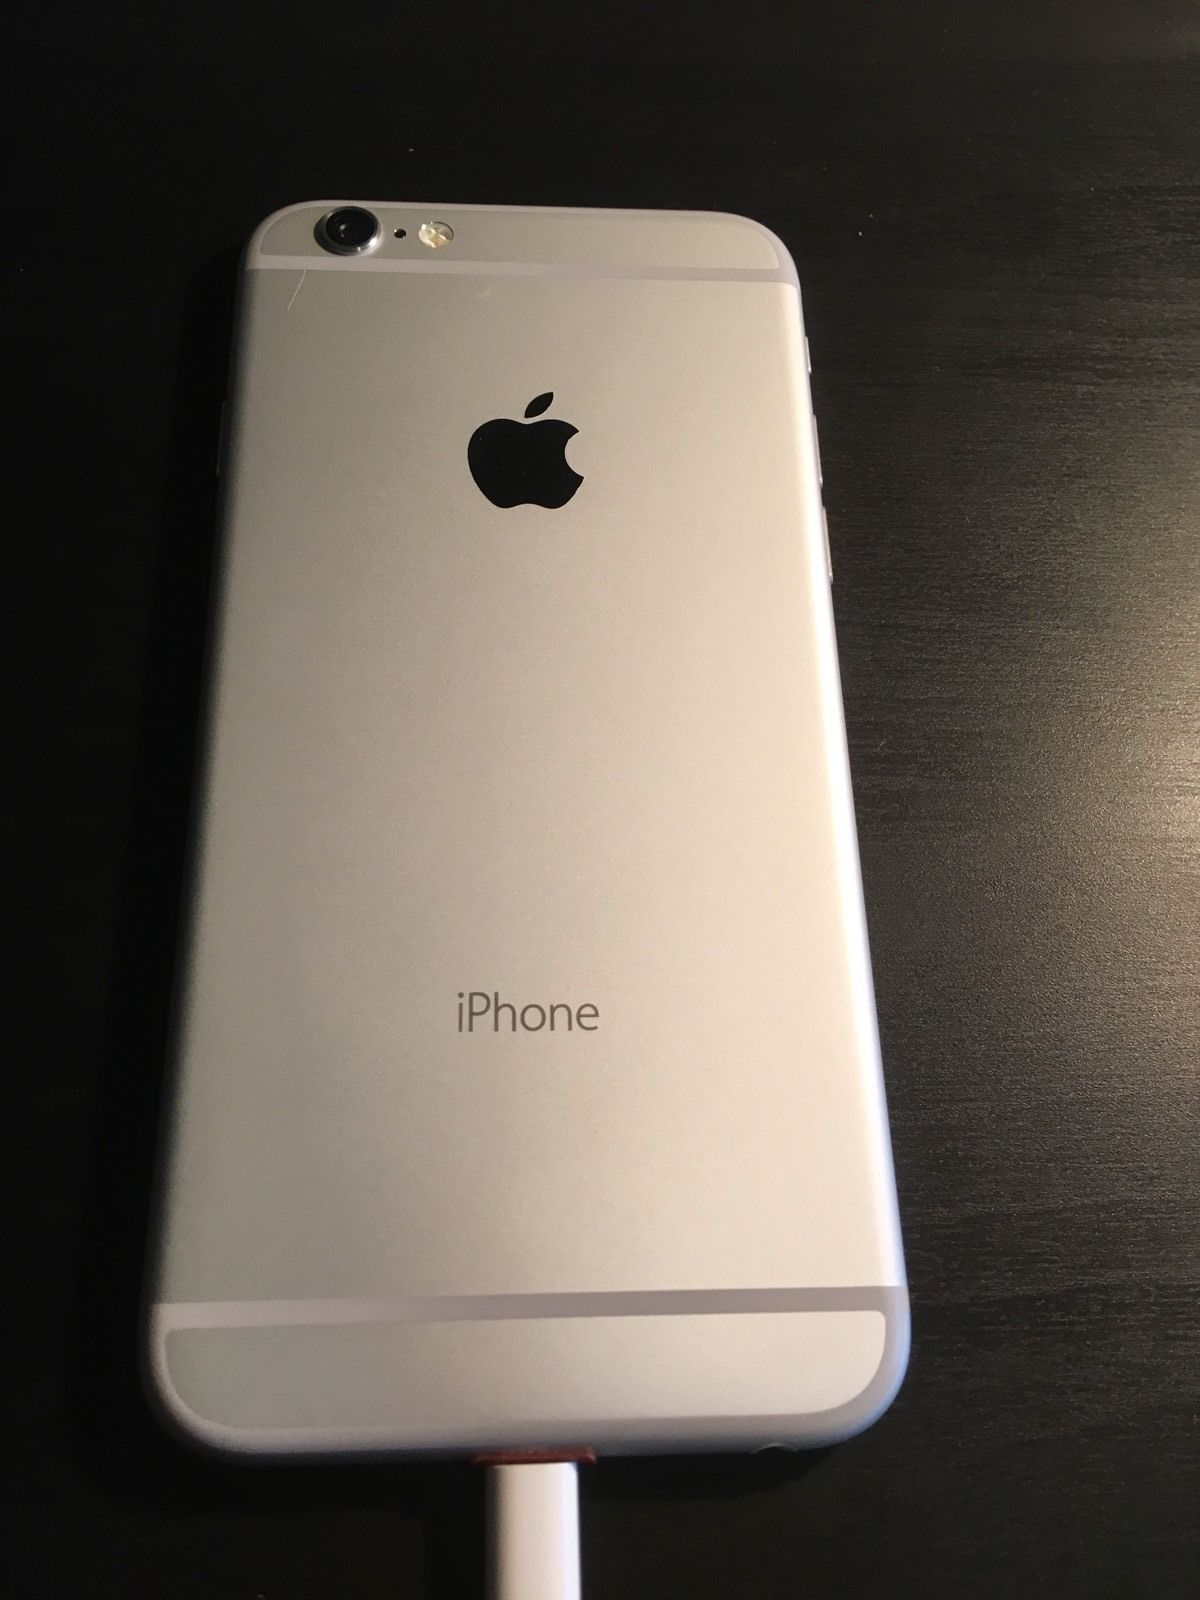 iphone 6 for sale prototype iphone 6 with switchboard os listed on ebay 14972